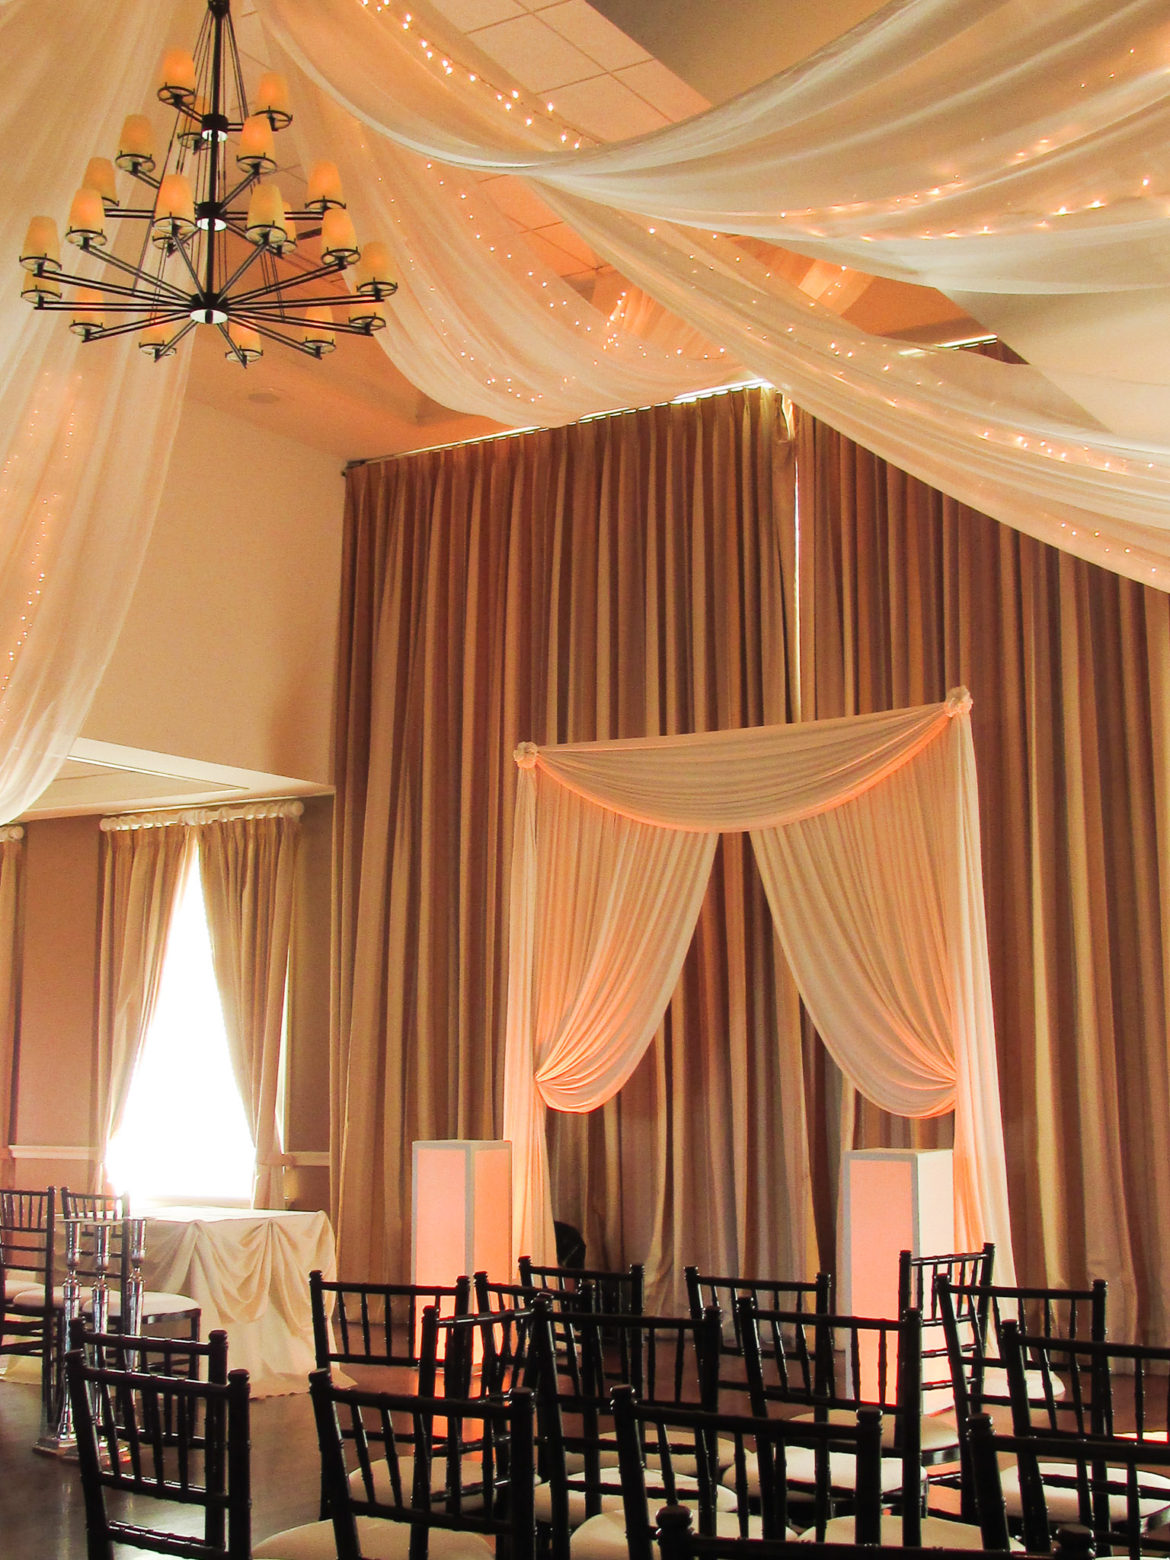 Elegant_Event_Lighting_Chicago_Arrowhead_Golf_Club_Wheaton_Wedding_Ceiling_Drapes_Twinkle_Lights_Ivory_Bridal_Arch_Ceremony_Flower_Pedestal_Amber_Uplighting